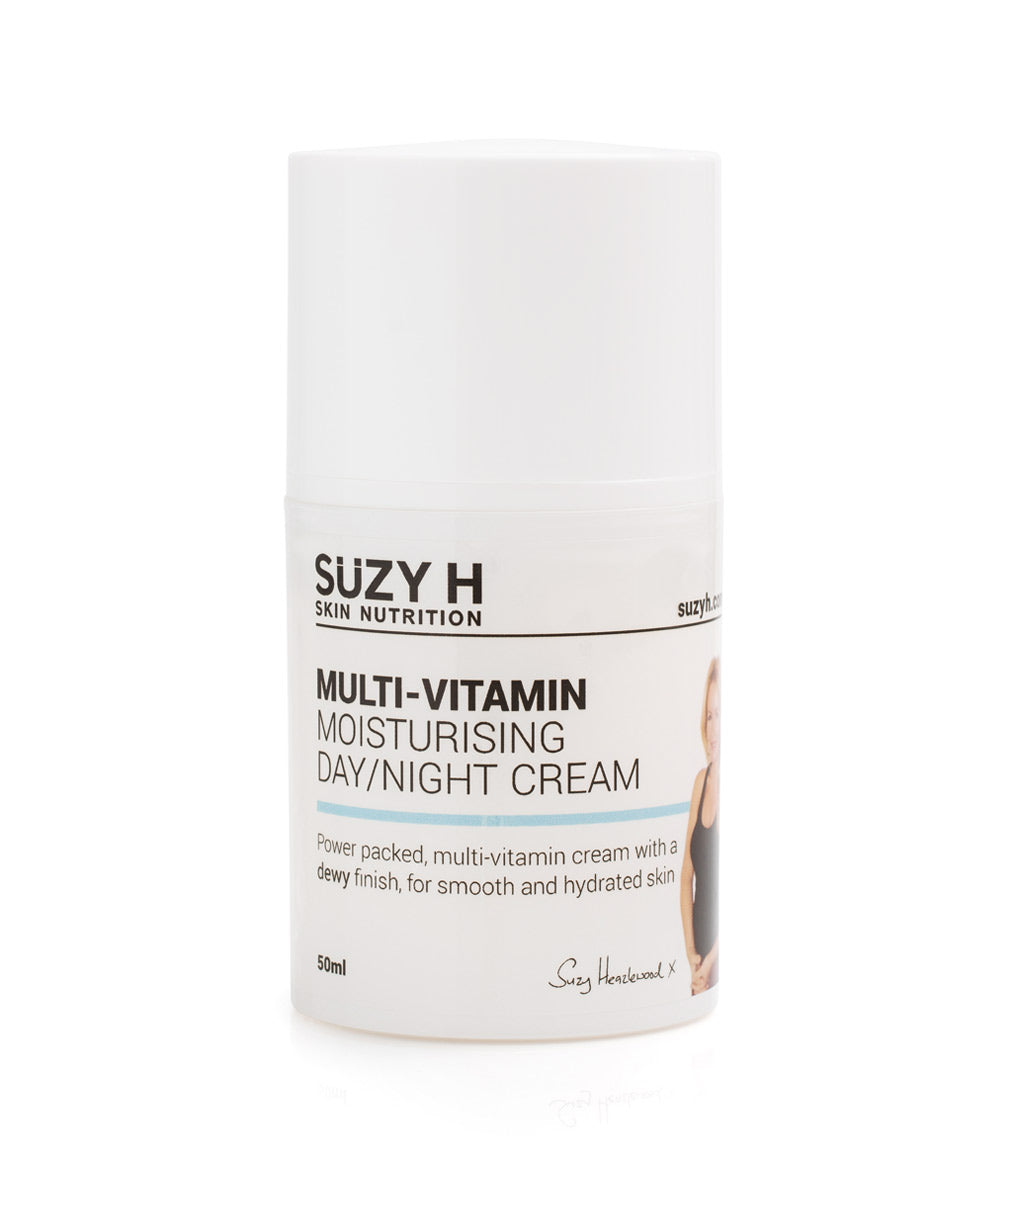 Multi-Vitamin Moisturising Day/Night Cream 50ml